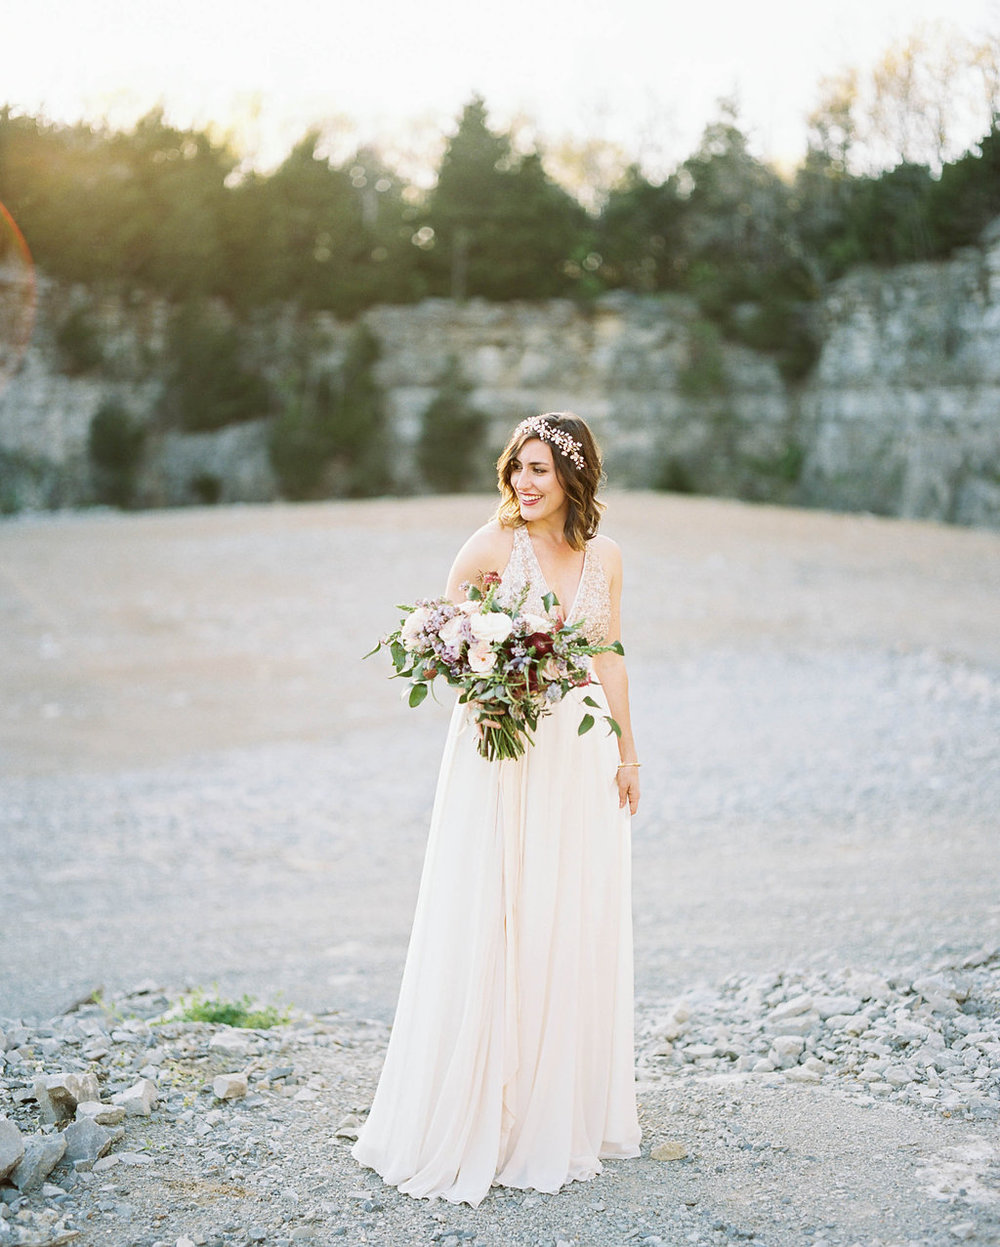 Rock quarry bridal portrait with lush, organic floral design // Nashville Florist